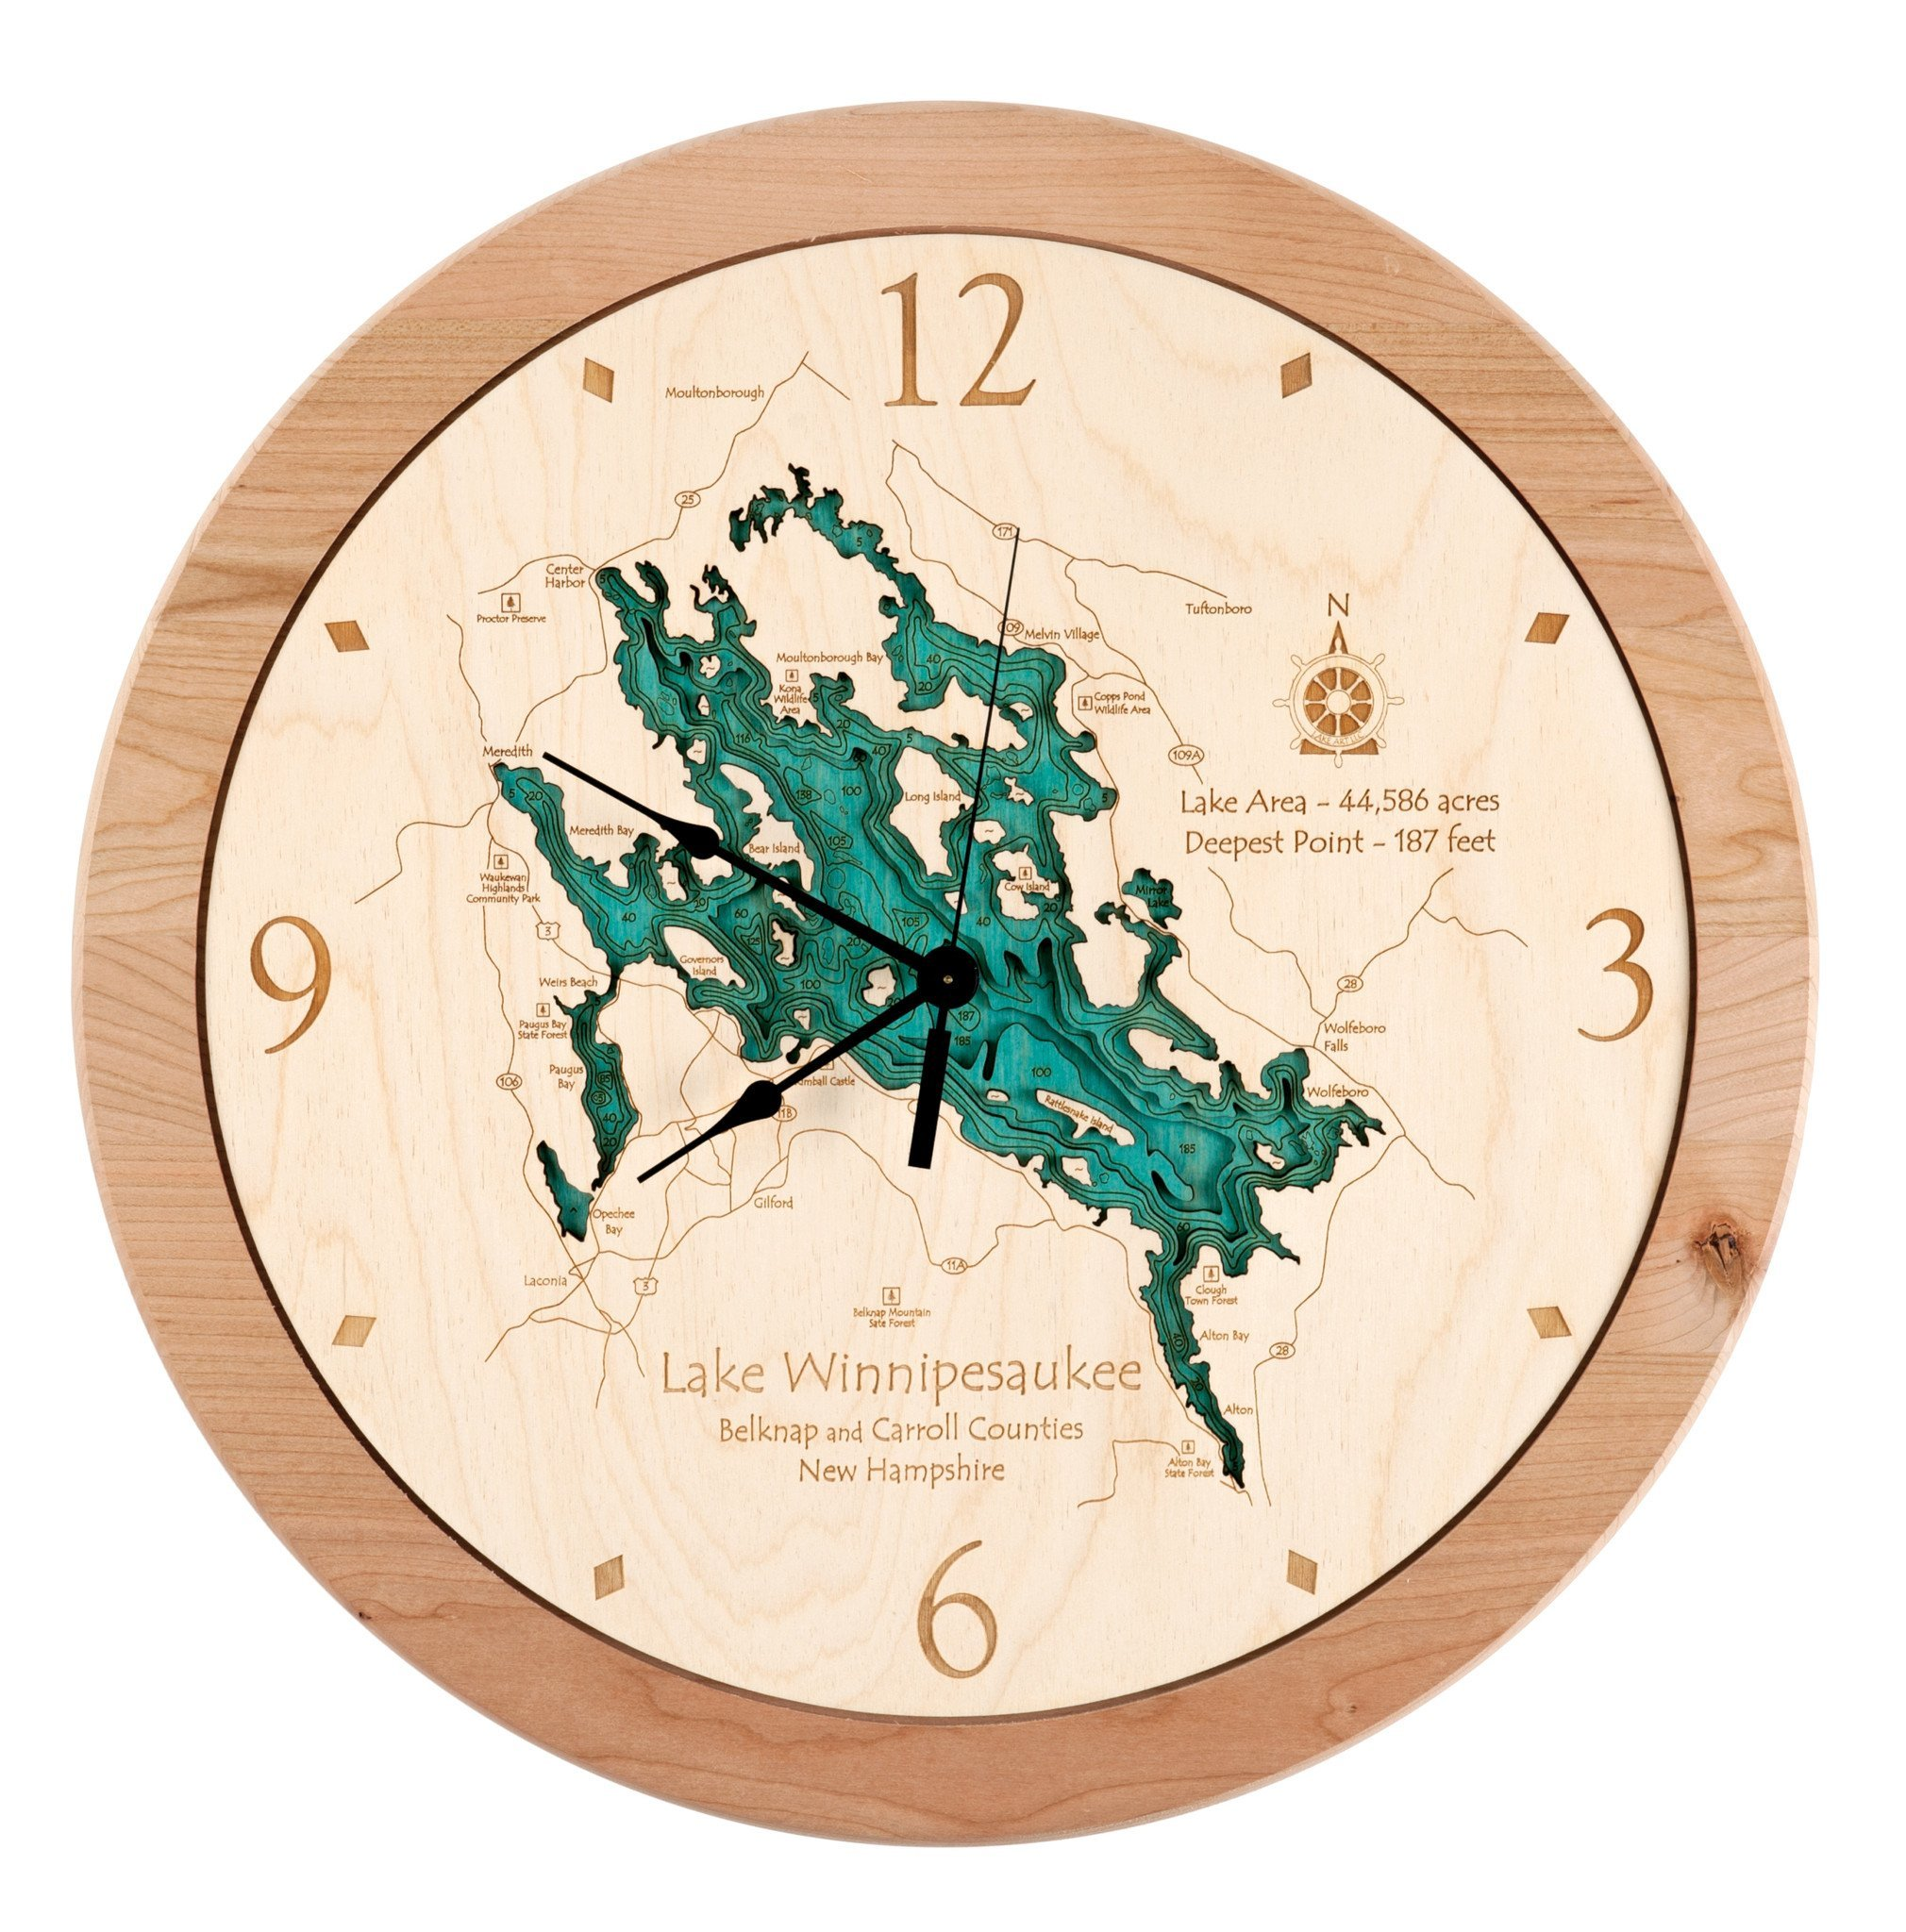 Lake Beshear in Caldwell Christian, KY - 3D Clock 17.5 IN - Laser carved wood nautical chart and topographic depth map. by Long Lake Lifestyle